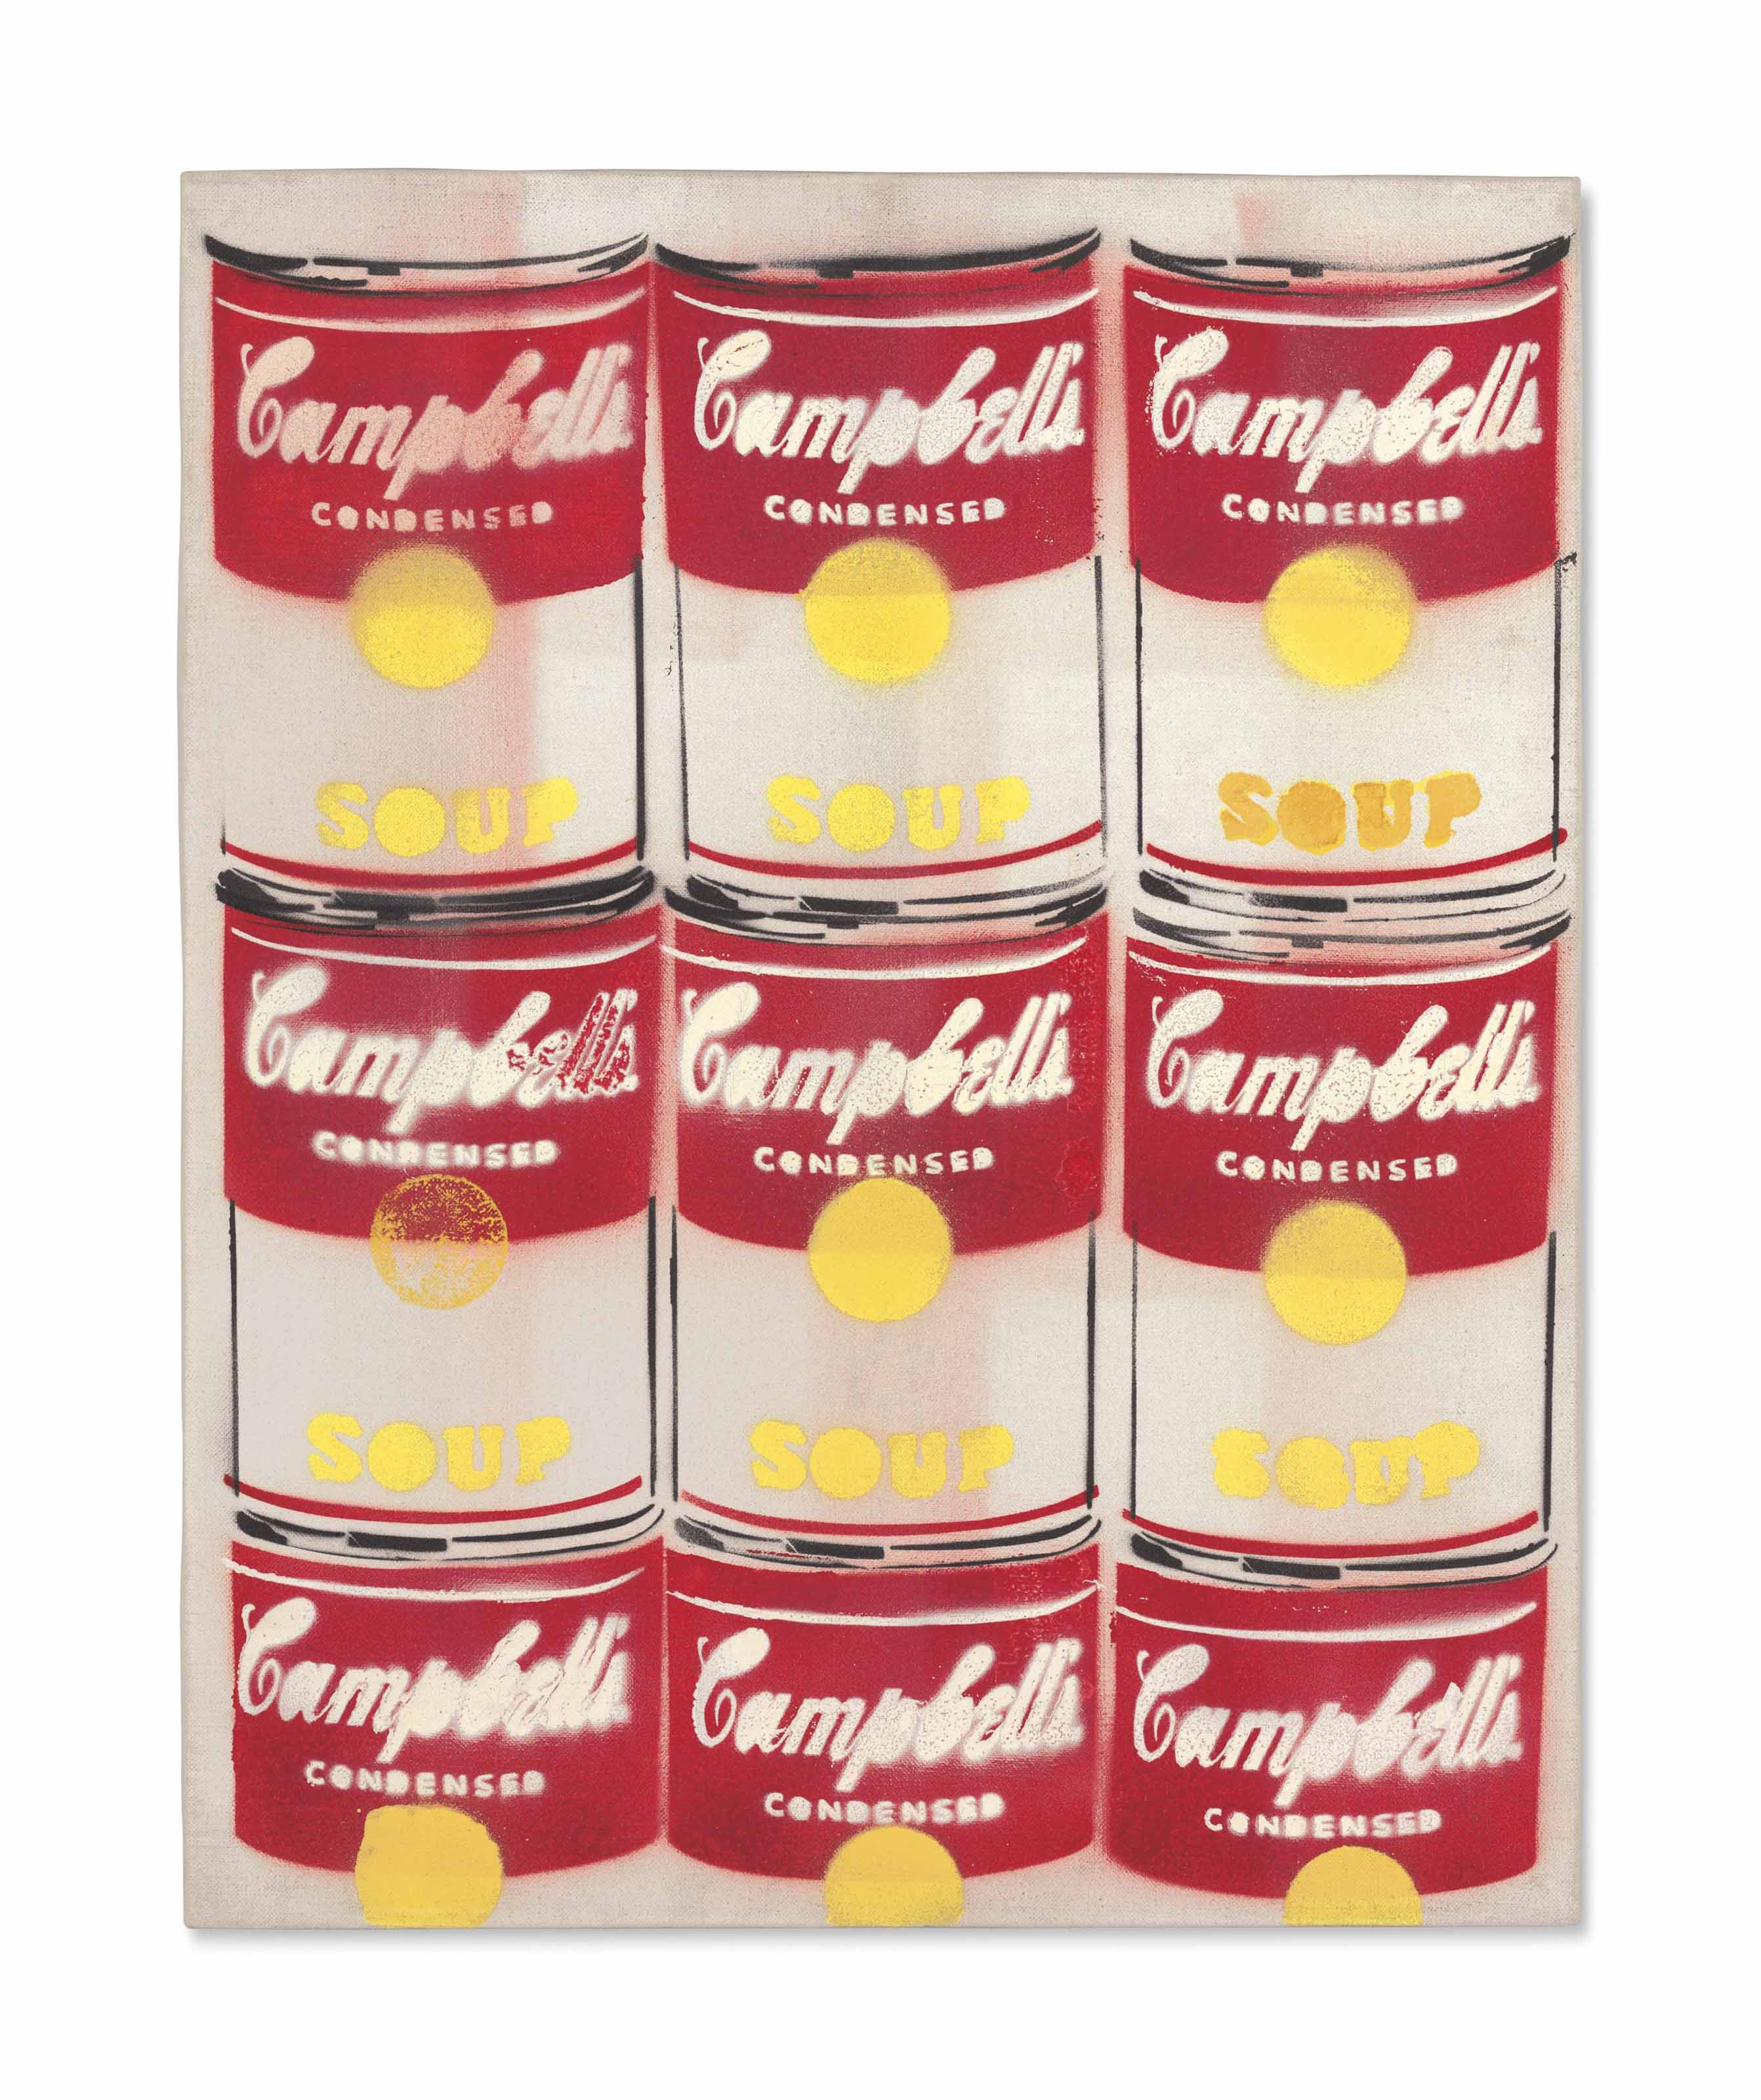 Warhol_Soup_Cans Eve and Day 24 130 131